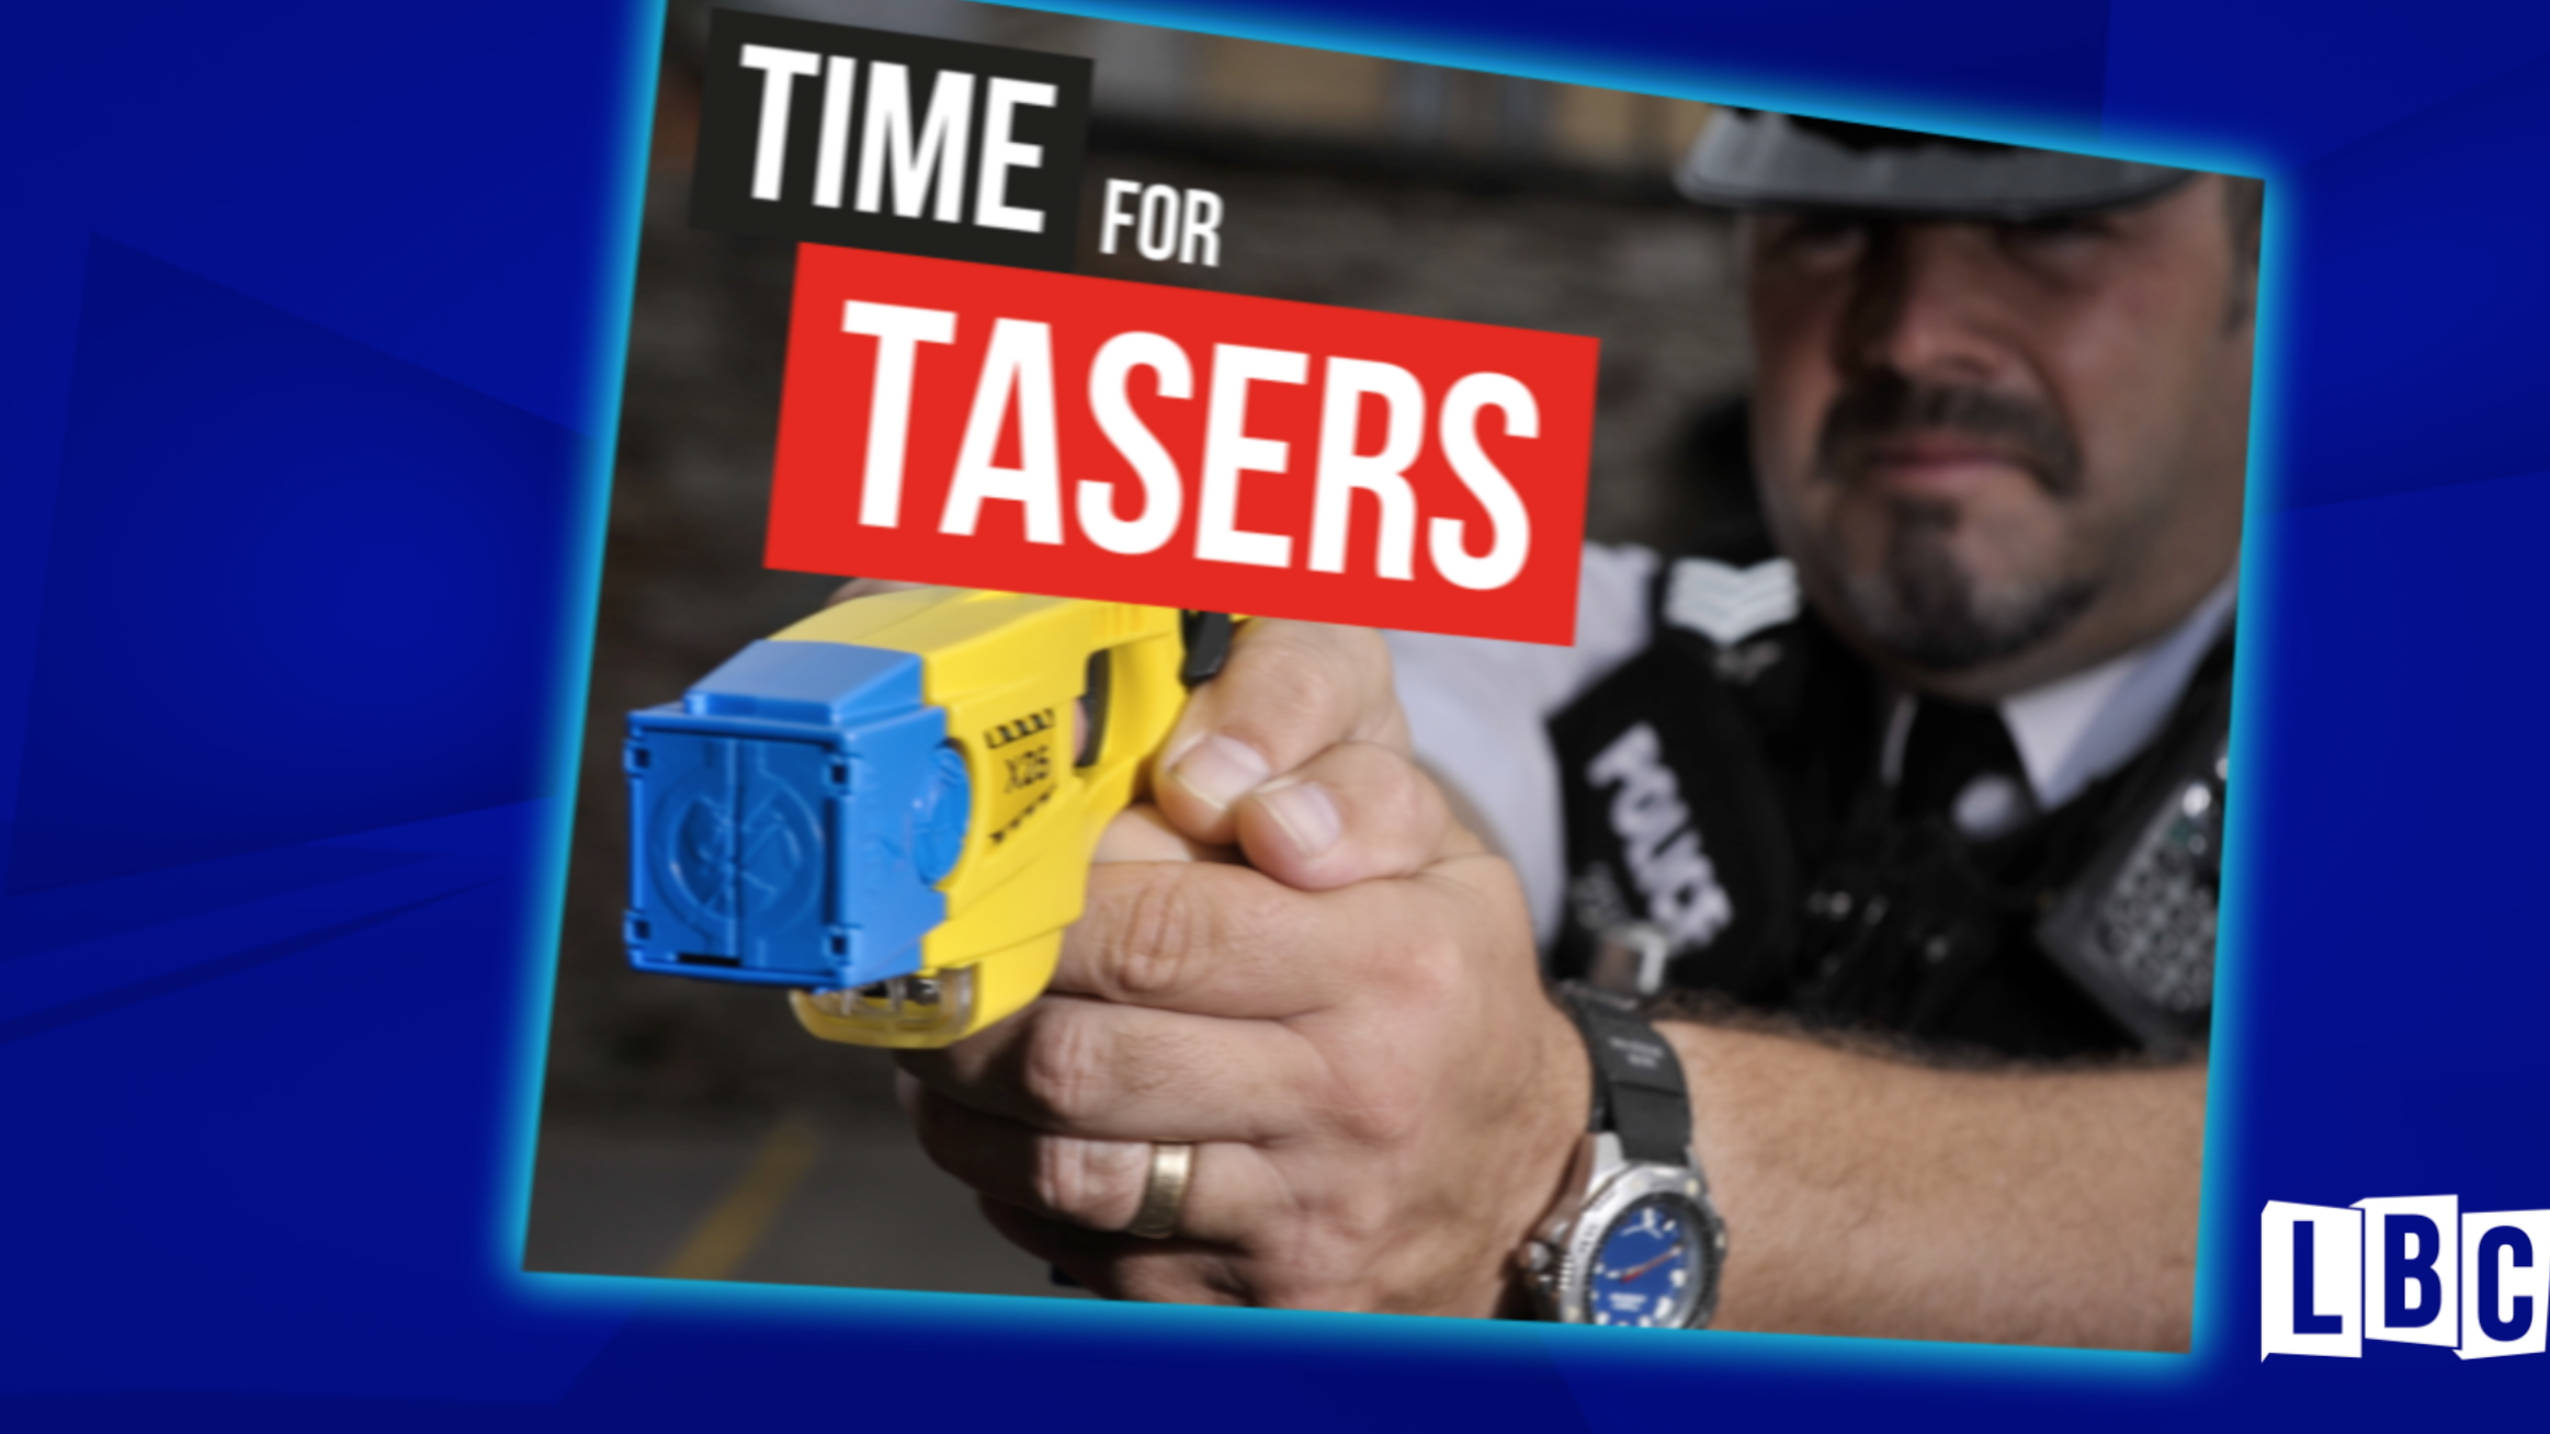 Public Overwhelmingly Back LBC's Call For All Police To Carry Tasers